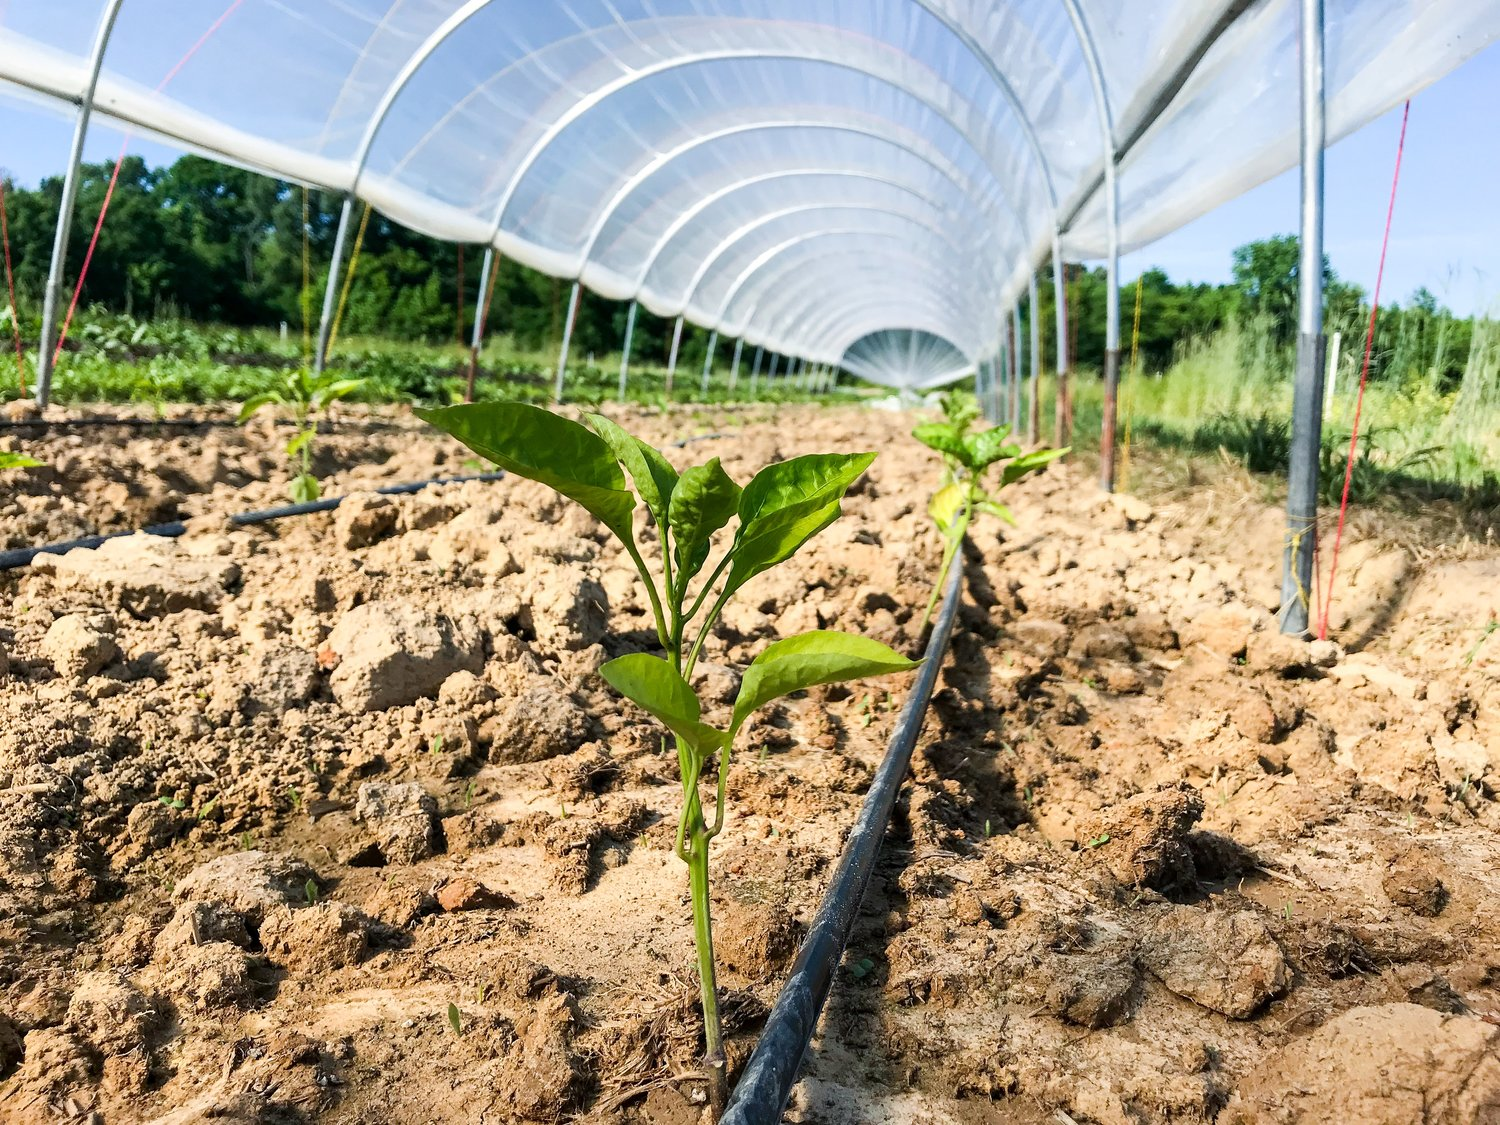 Freshly transplanted pepper plants in our caterpillar tunnel at Tupelo